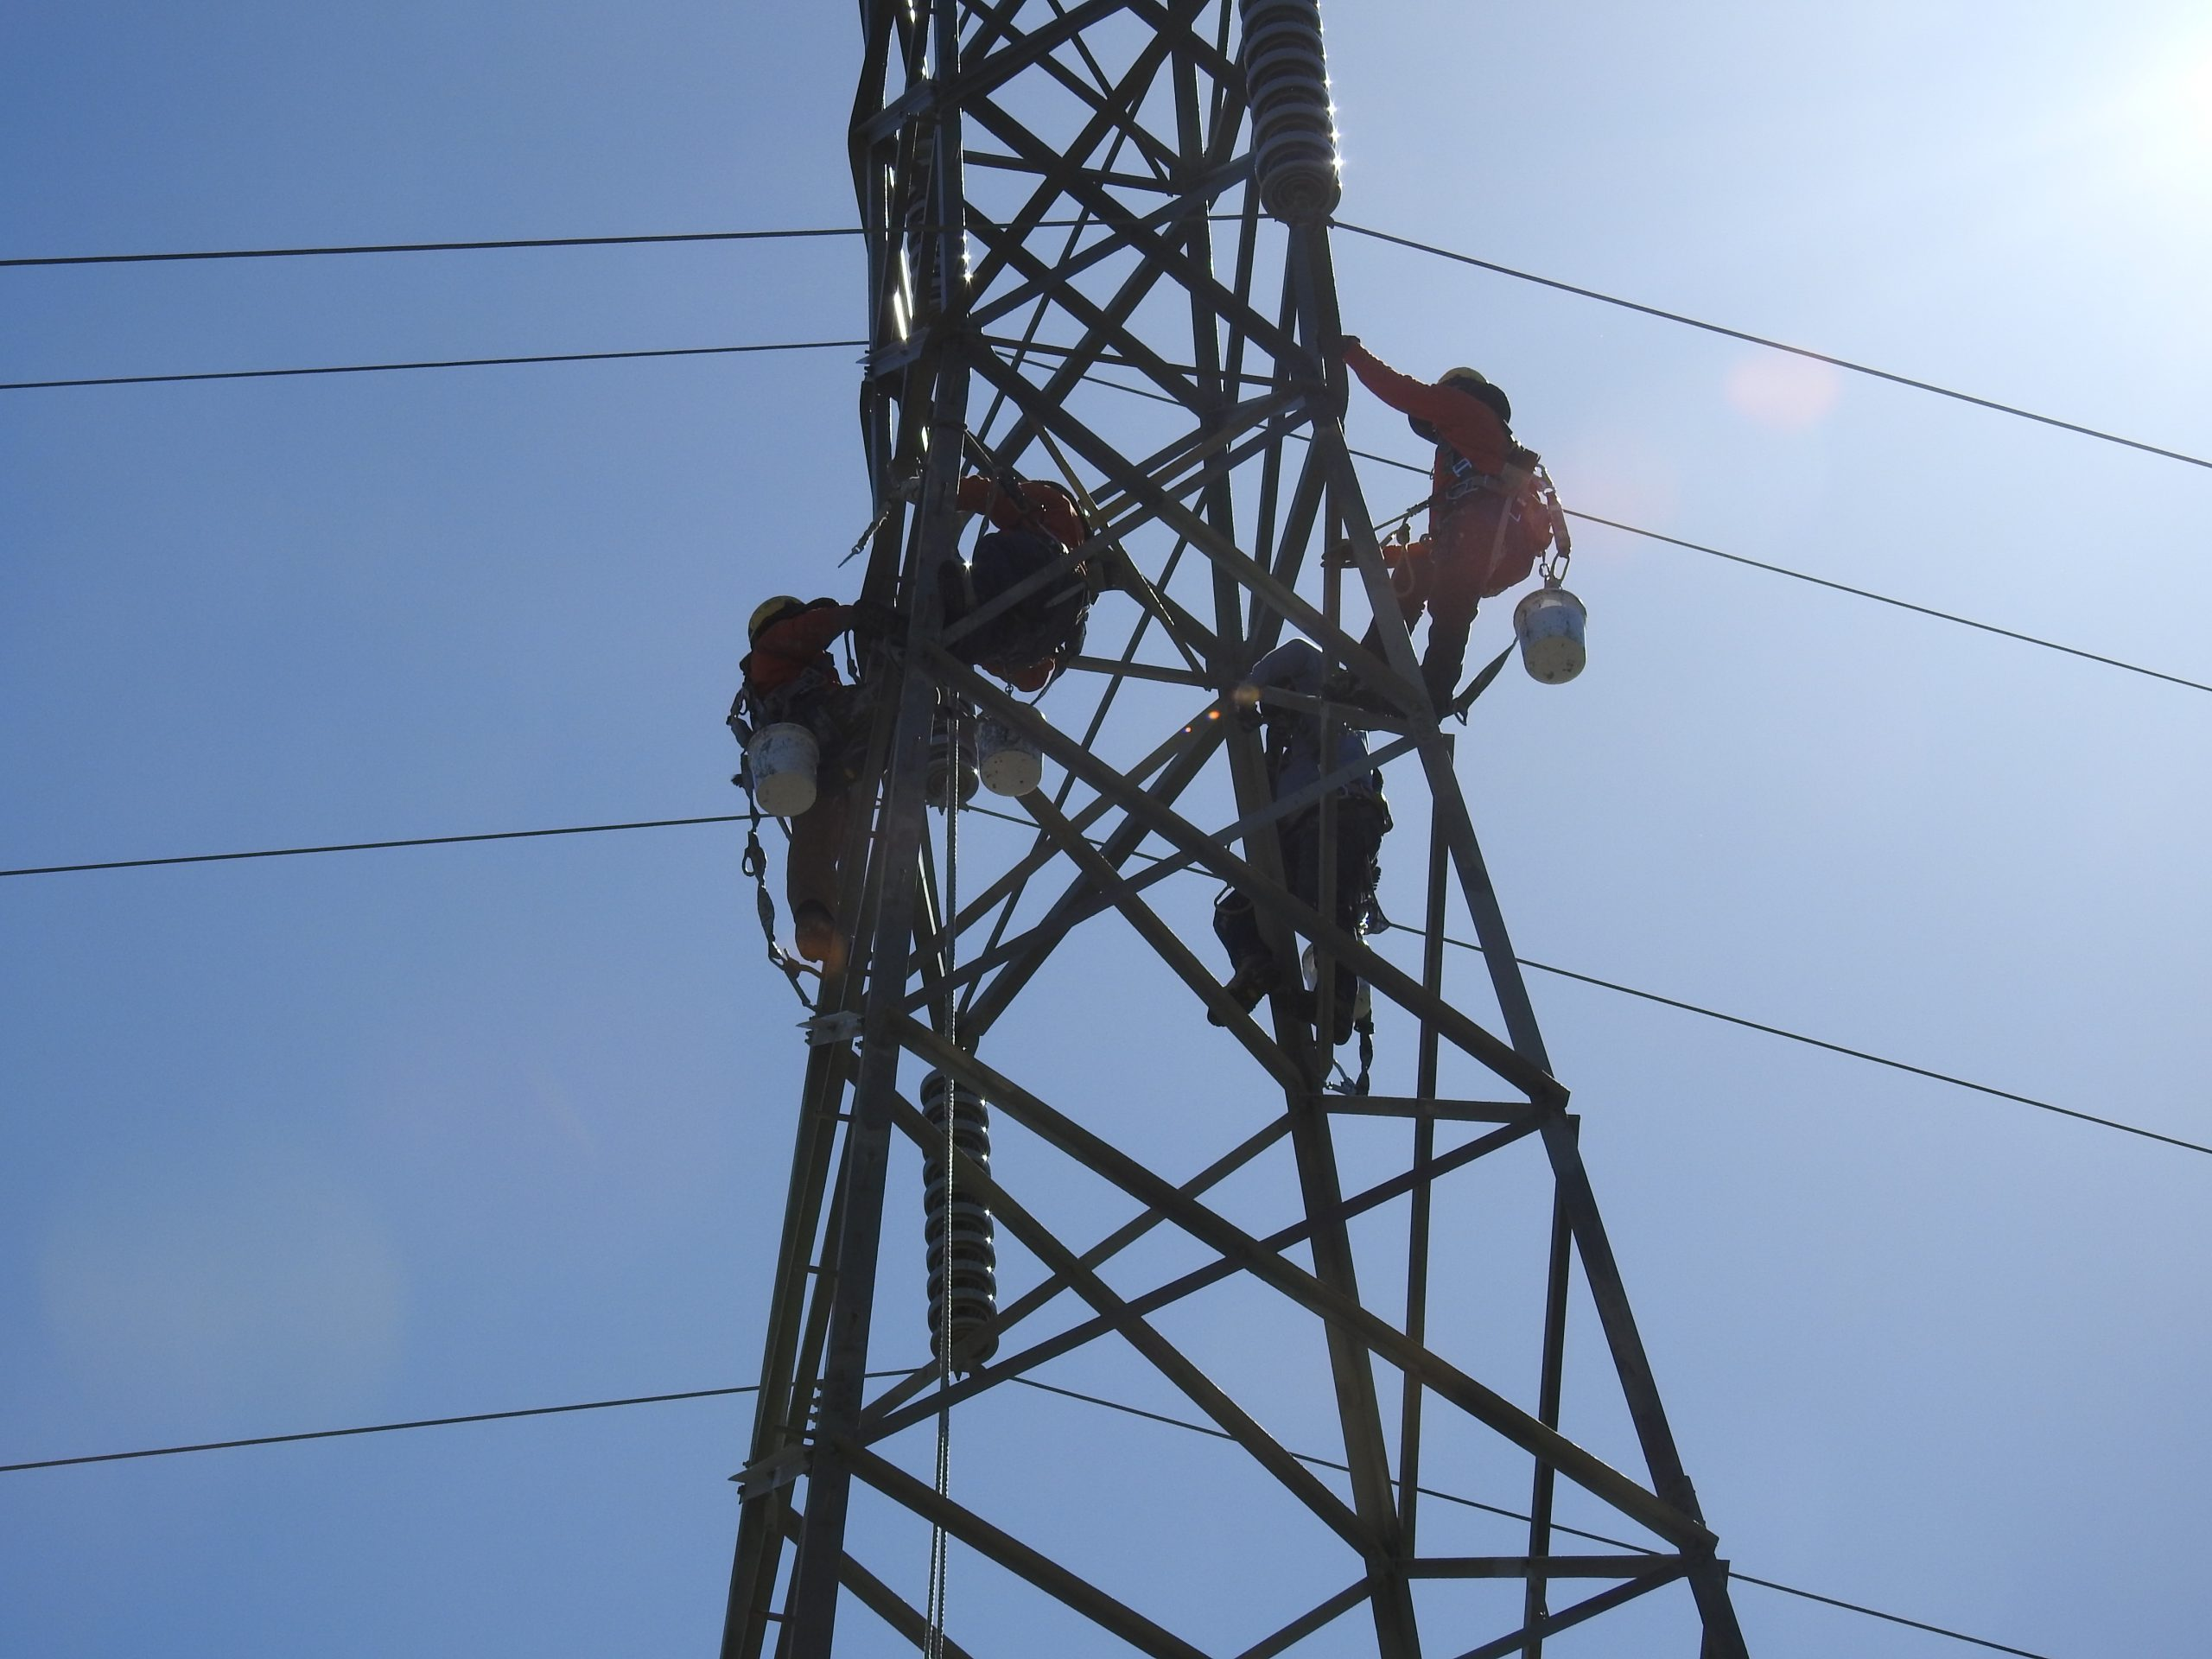 PG&E workers painting towers in Orinda in June 2017. Photo by Scott Morris.